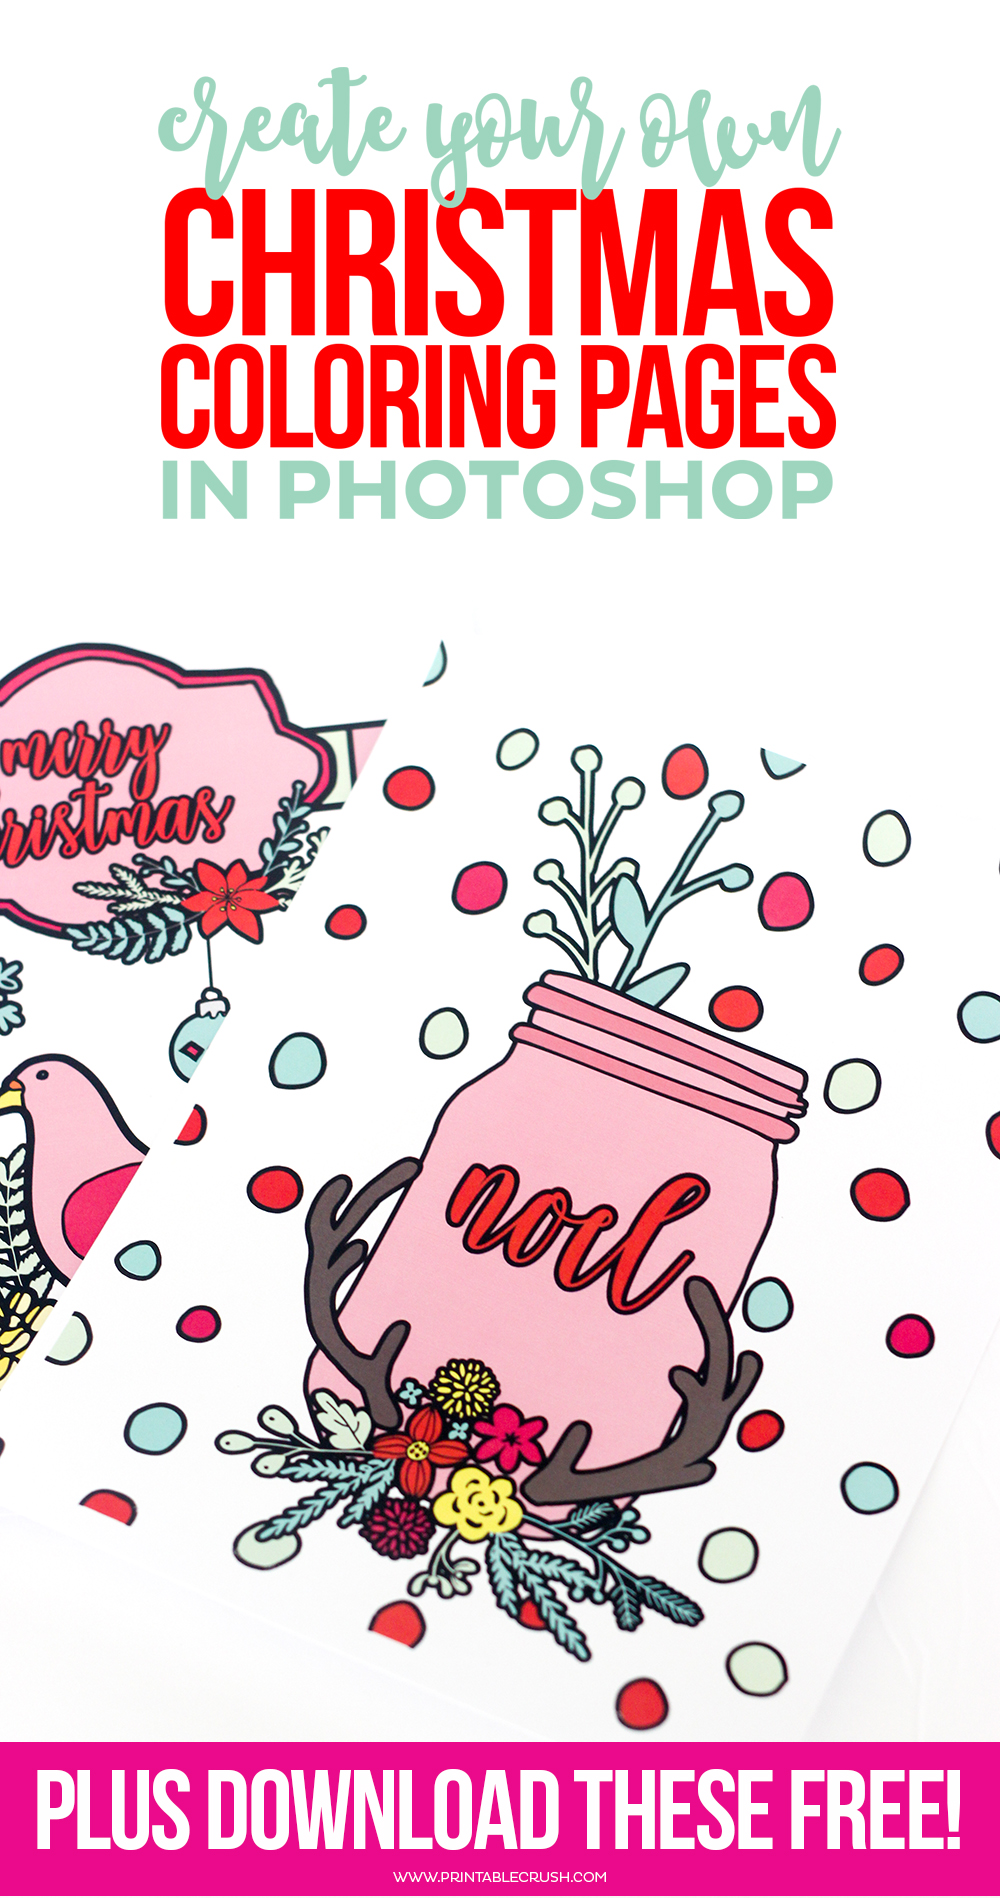 learn to create christmas coloring pages in photoshop printable